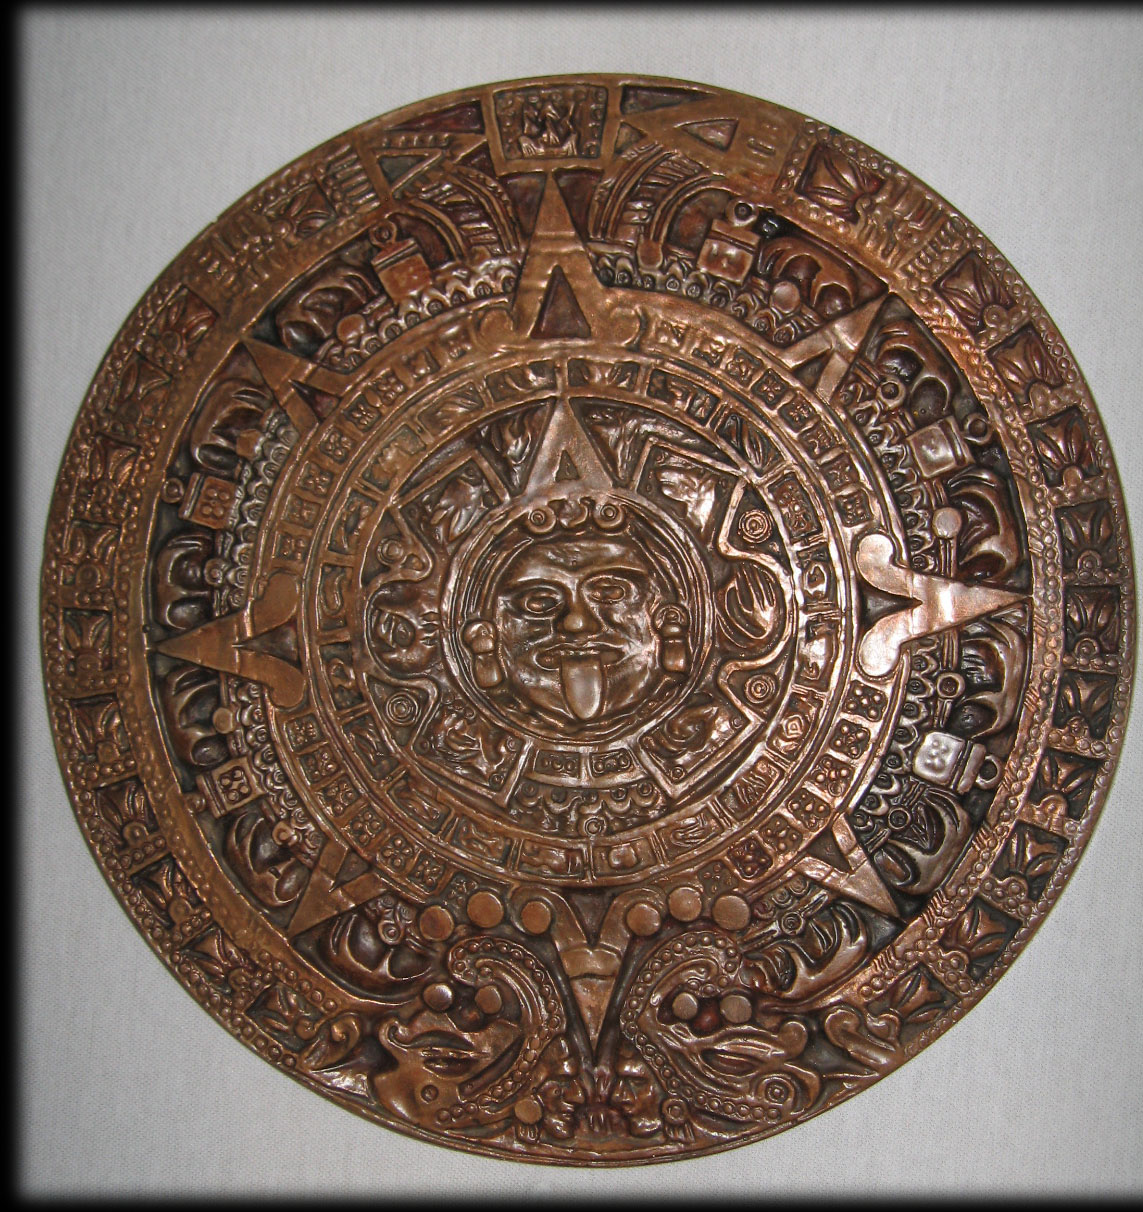 prophecies and the mayan calendar essay The premise of the mayan calendar was sequences and cycles in planetary and galactic events the dreamspell is a galactic-solar calendar of cosmic relationships as they relate to planets and life forms.